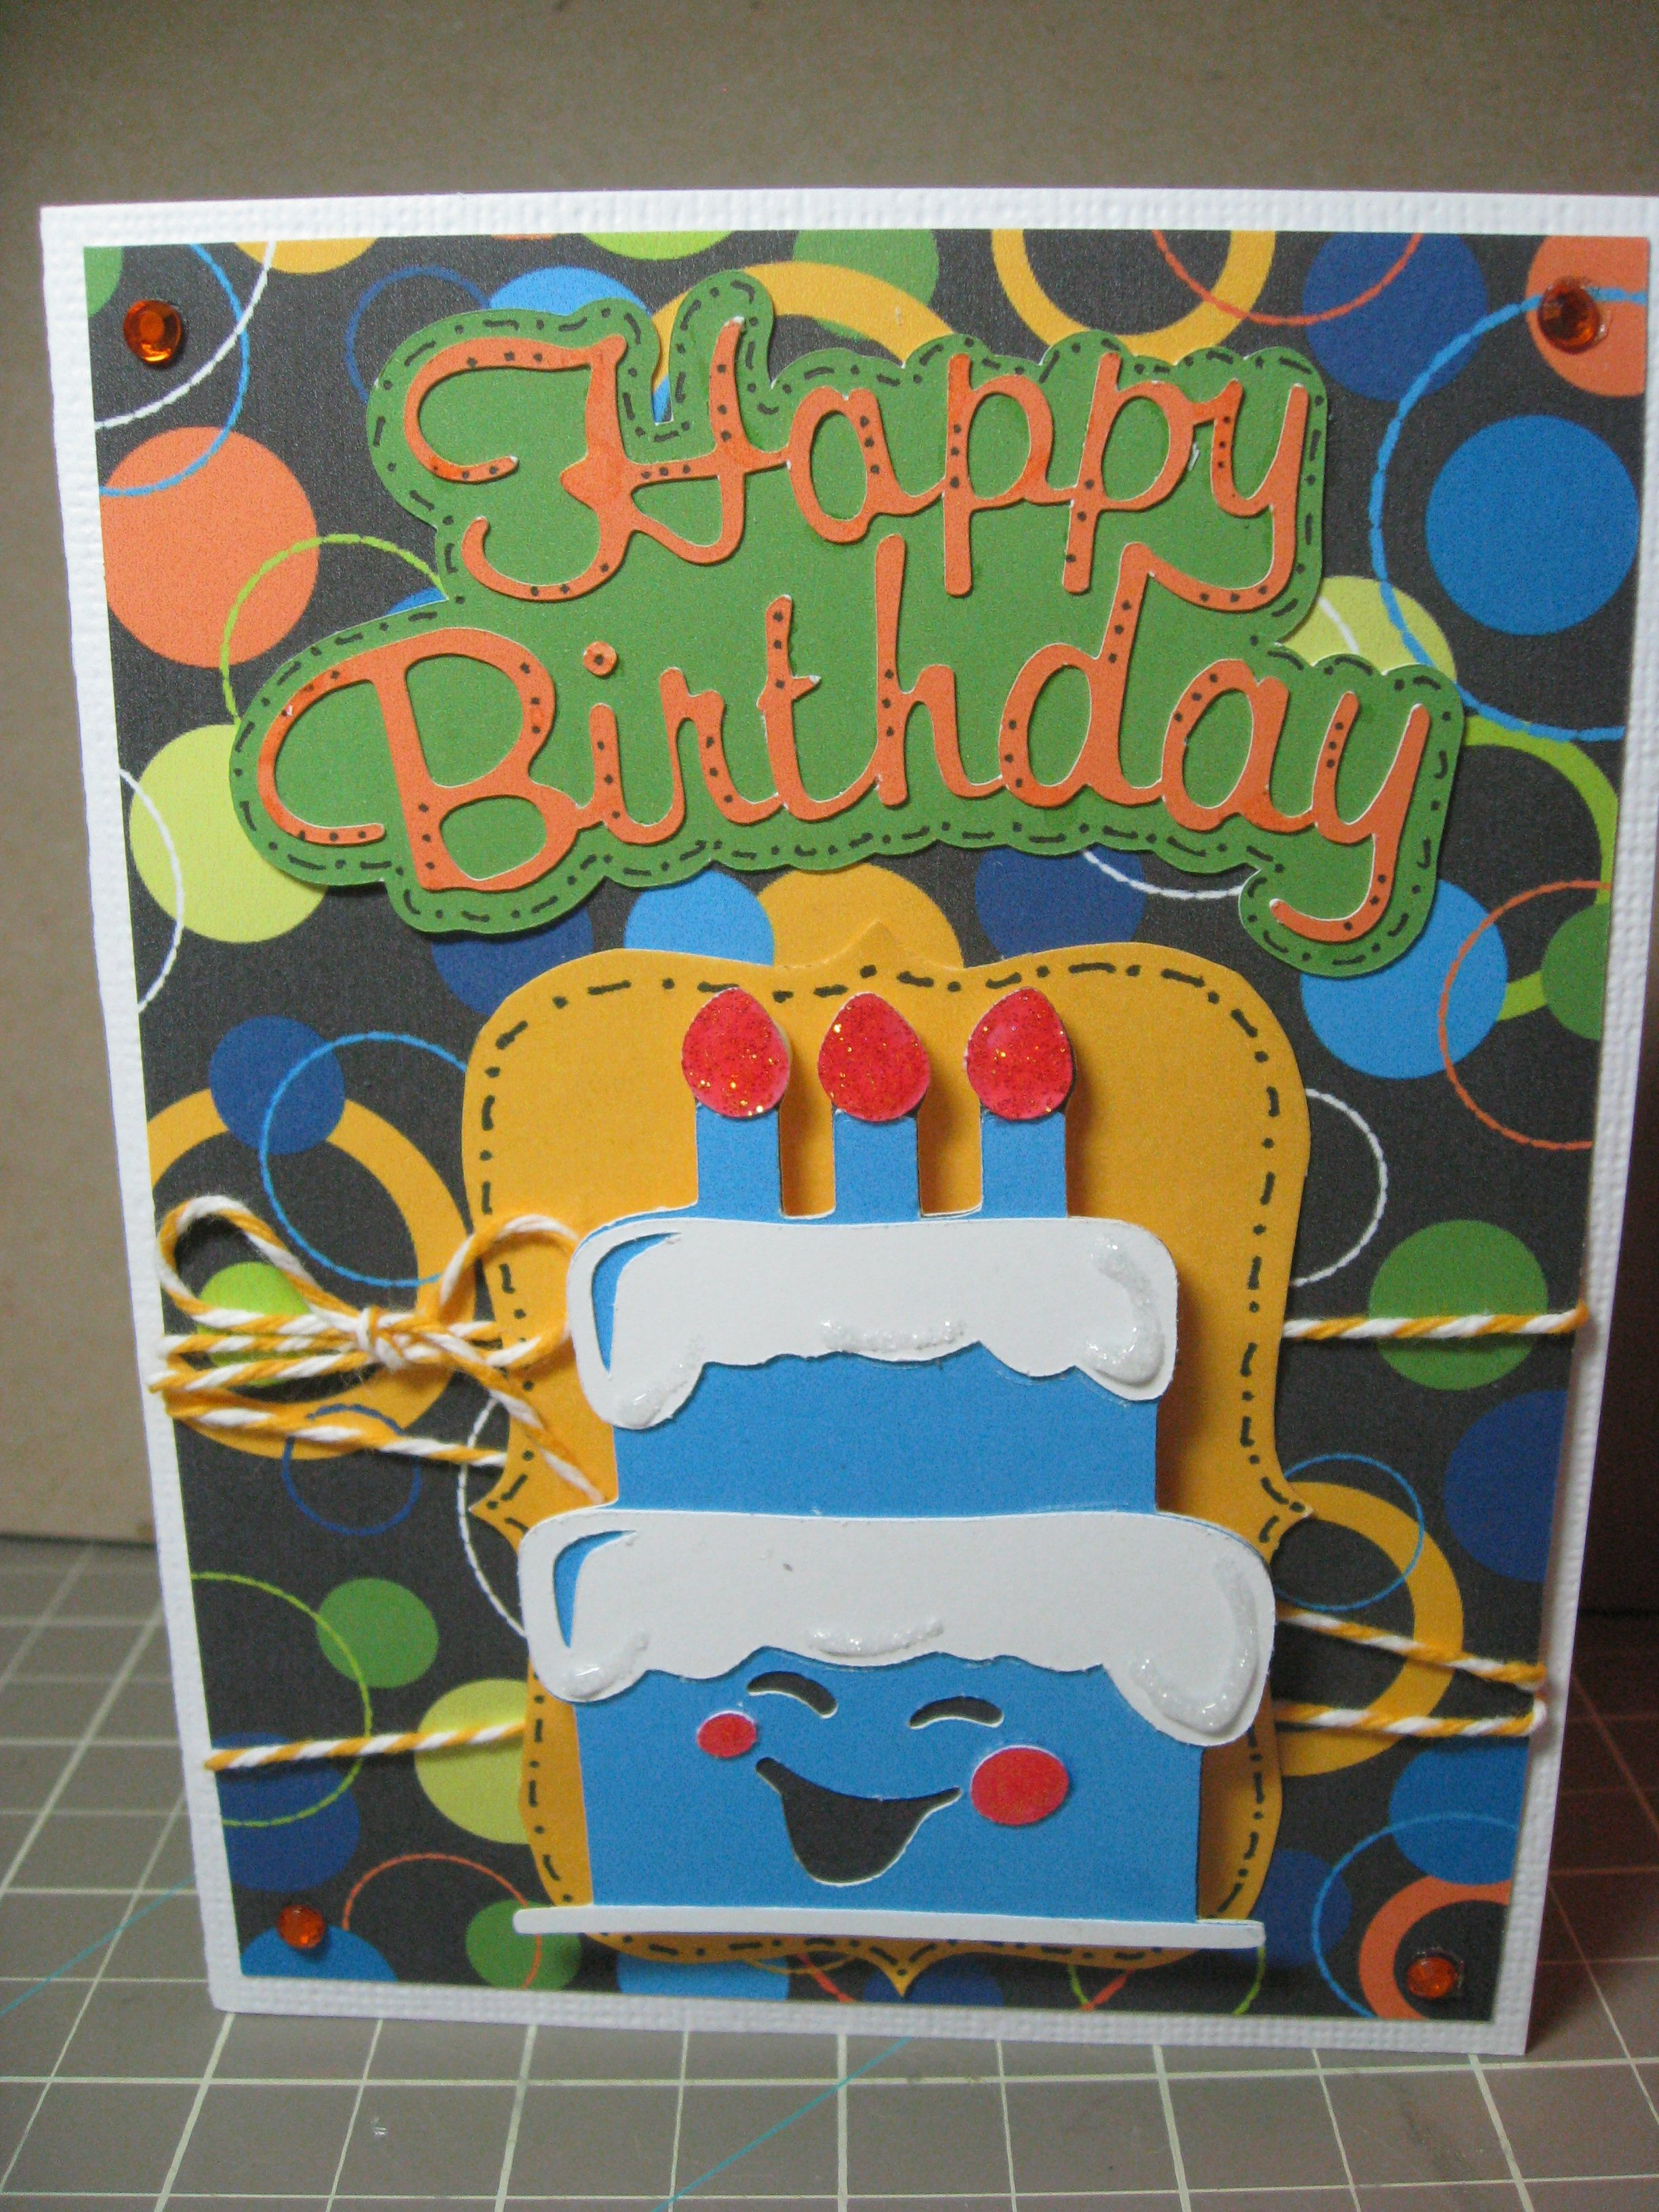 Another birthday card.